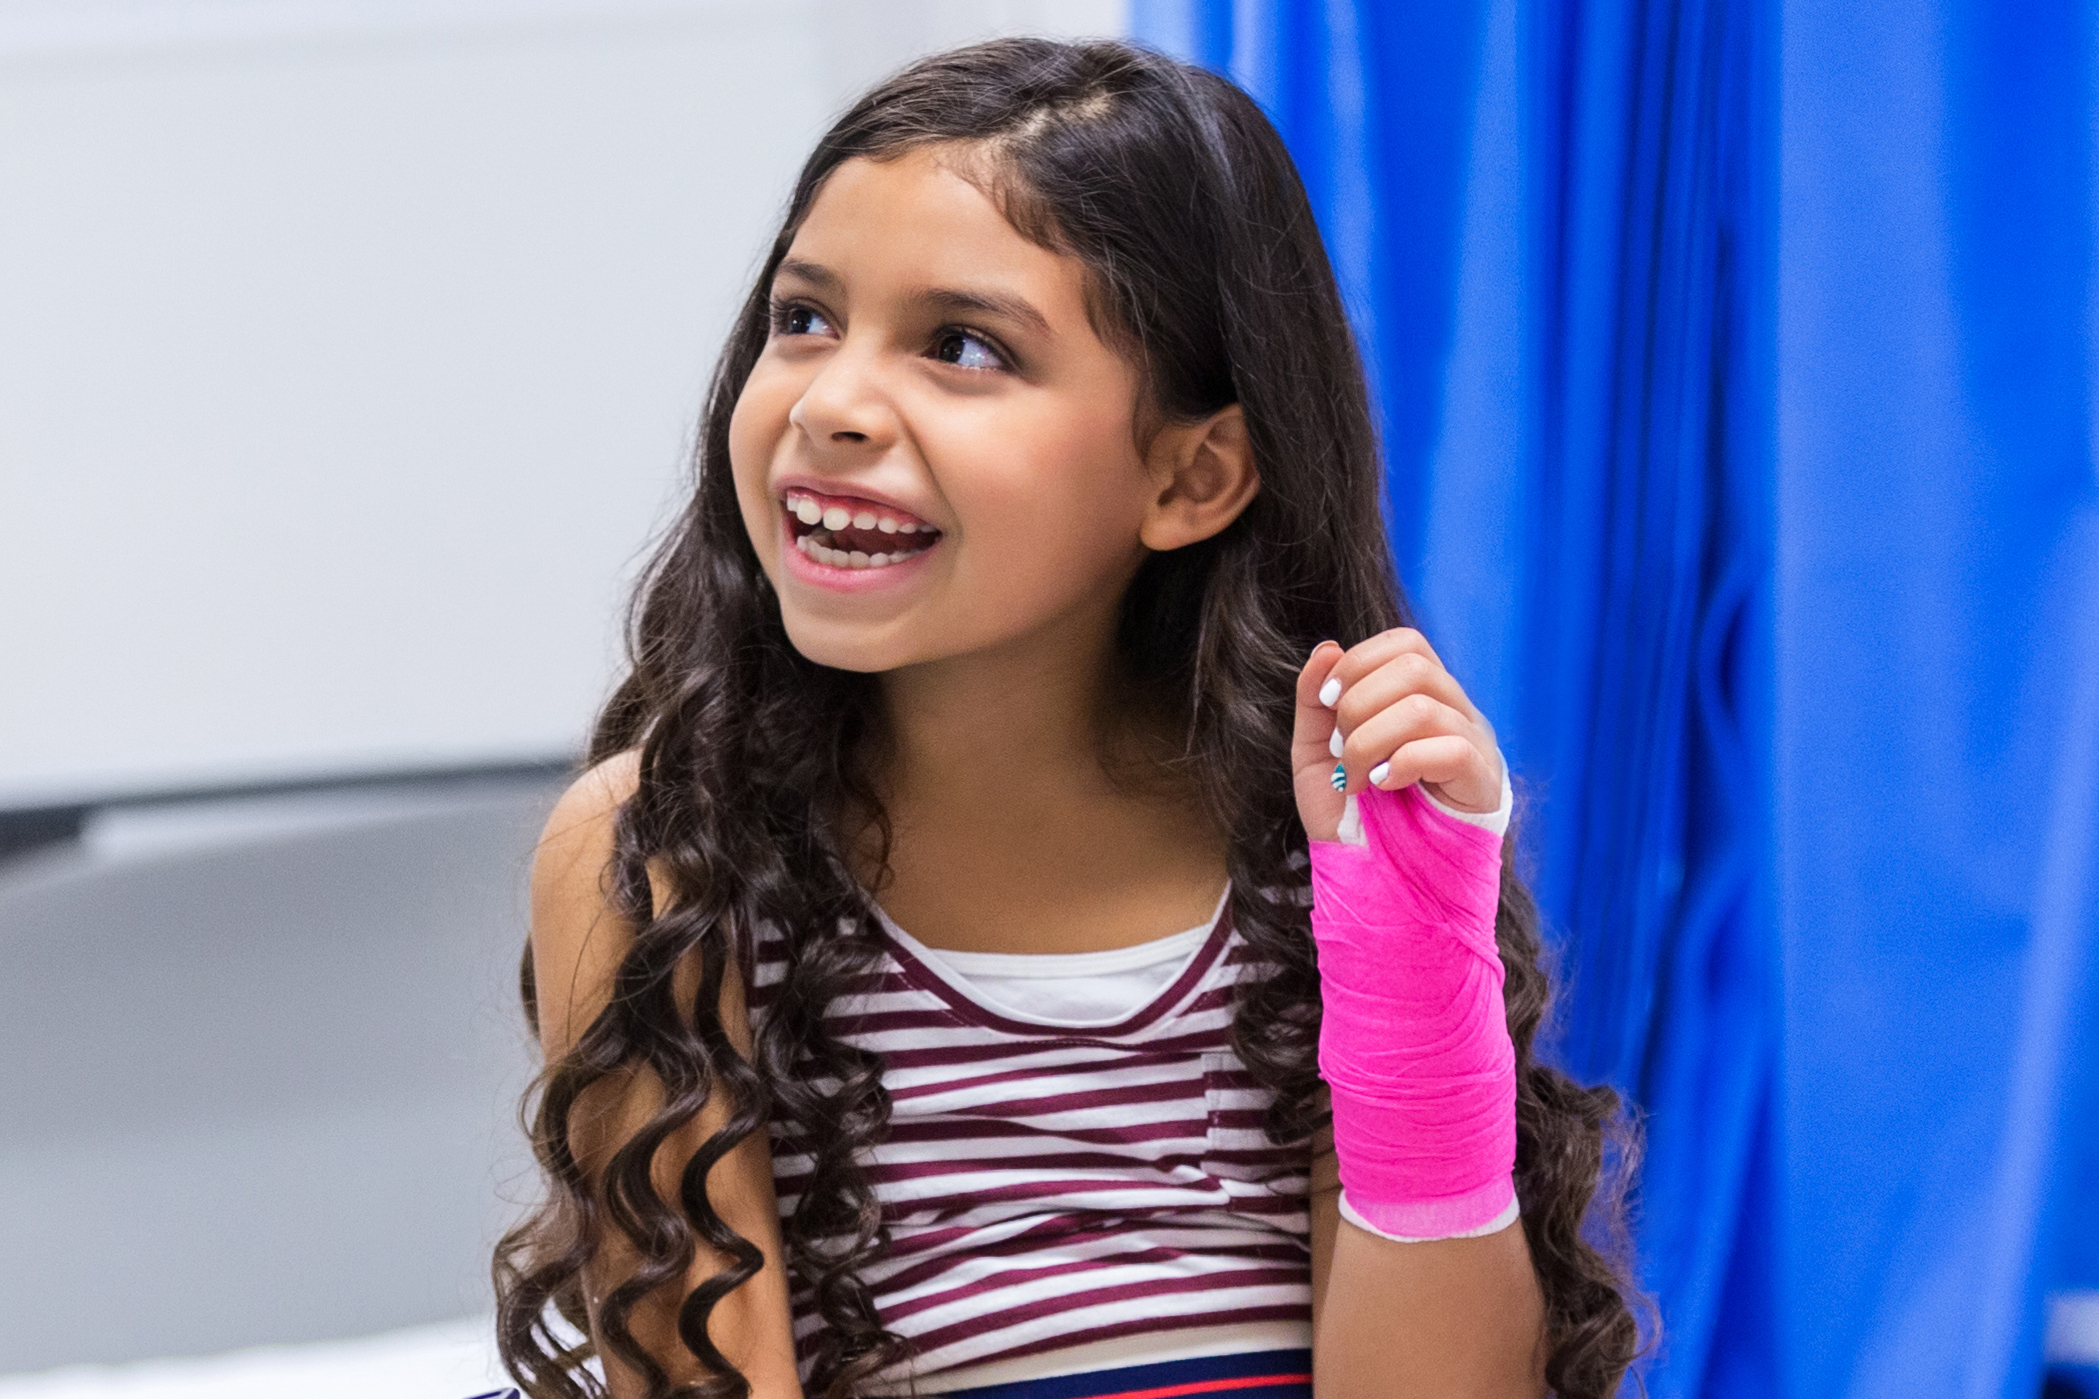 Young Girl in Pink Cast